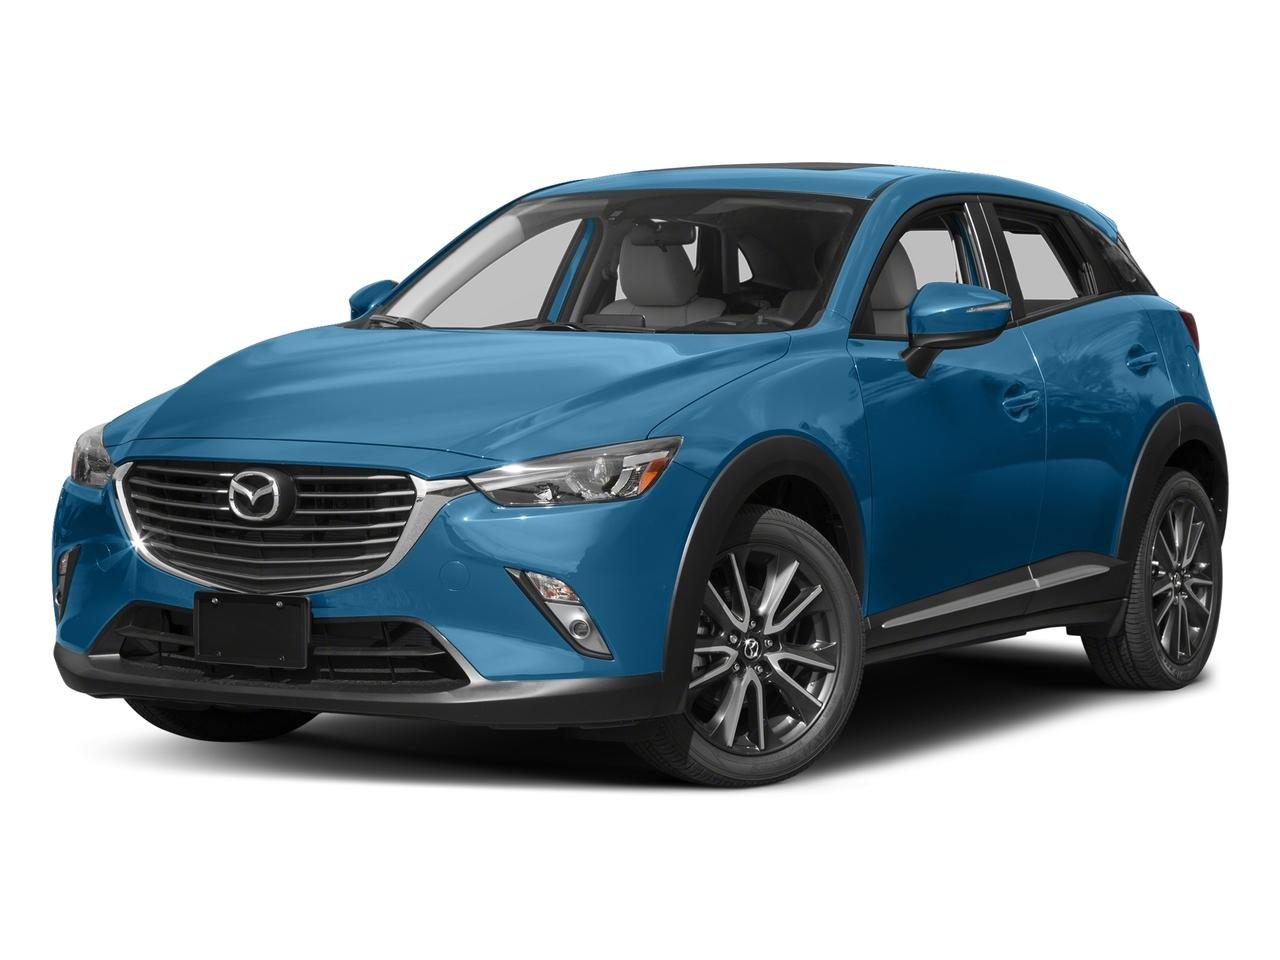 2017 Mazda CX-3 Vehicle Photo in Bowie, MD 20716